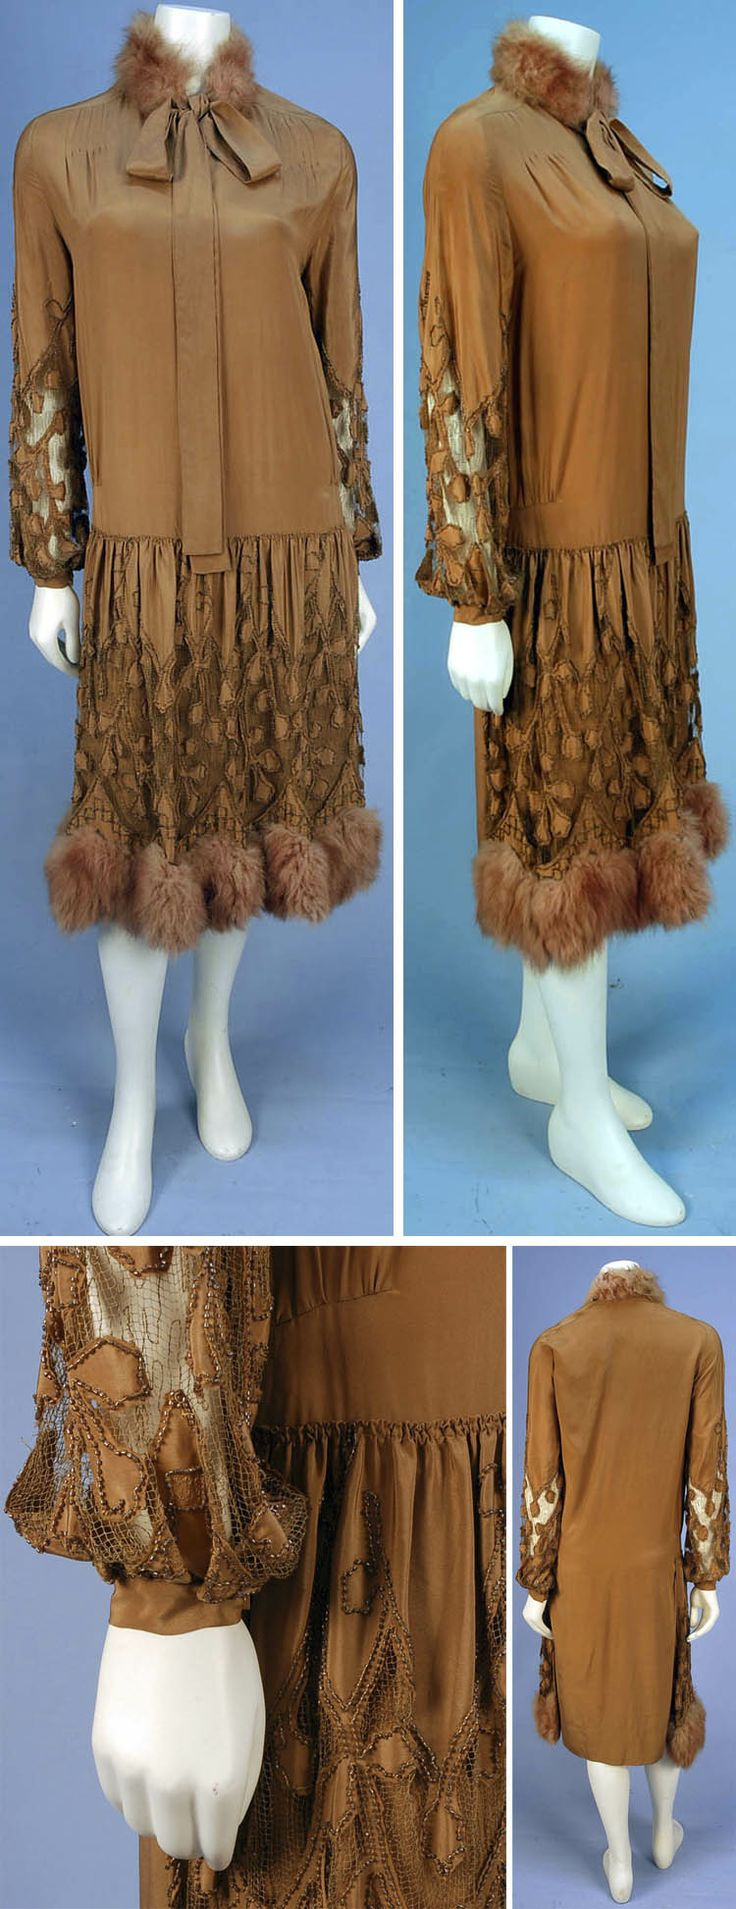 Cinnamon crepe de chine dress with beaded net and fur, 1920s. Long sleeve V-neck; dropped waist. Net lower sleeve & front skirt overlay have stylized leaf appliqués and are trimmed with cinnamon beading & embroidery. Reddish-brown fur hem band and collar with long silk ties. Whitaker Auctions